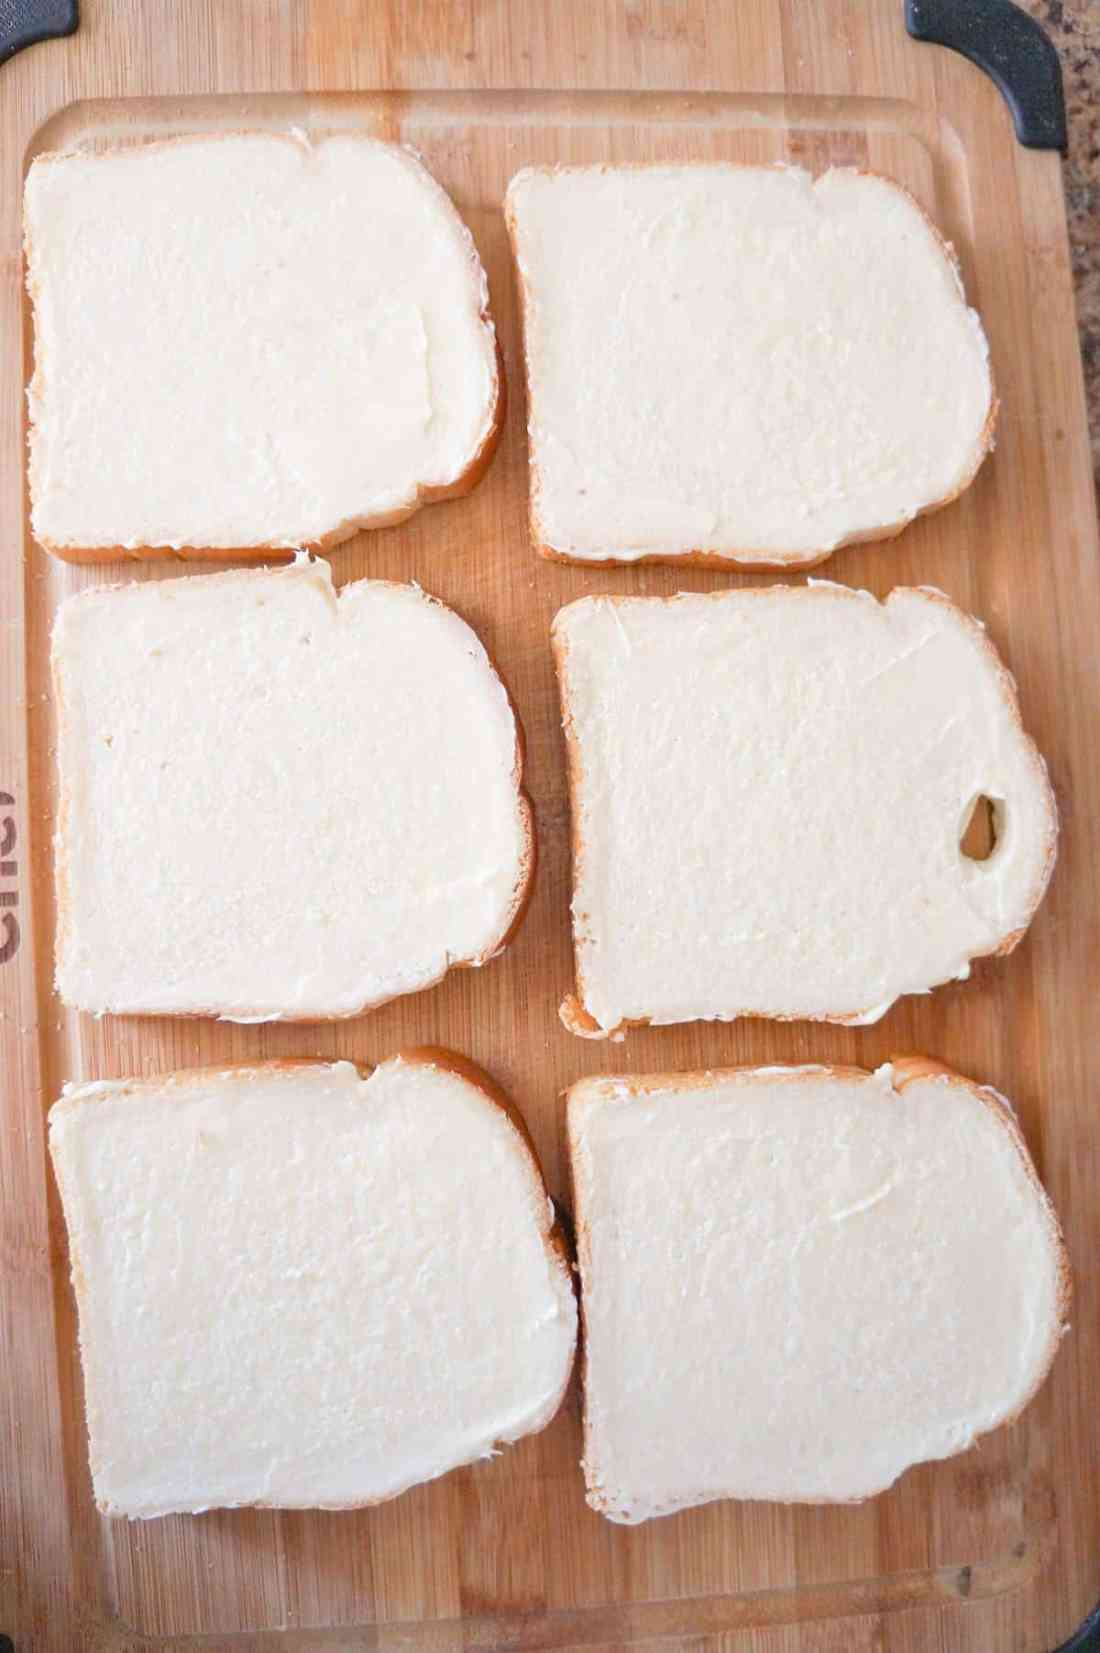 bread slices spread with margarine on a cutting board